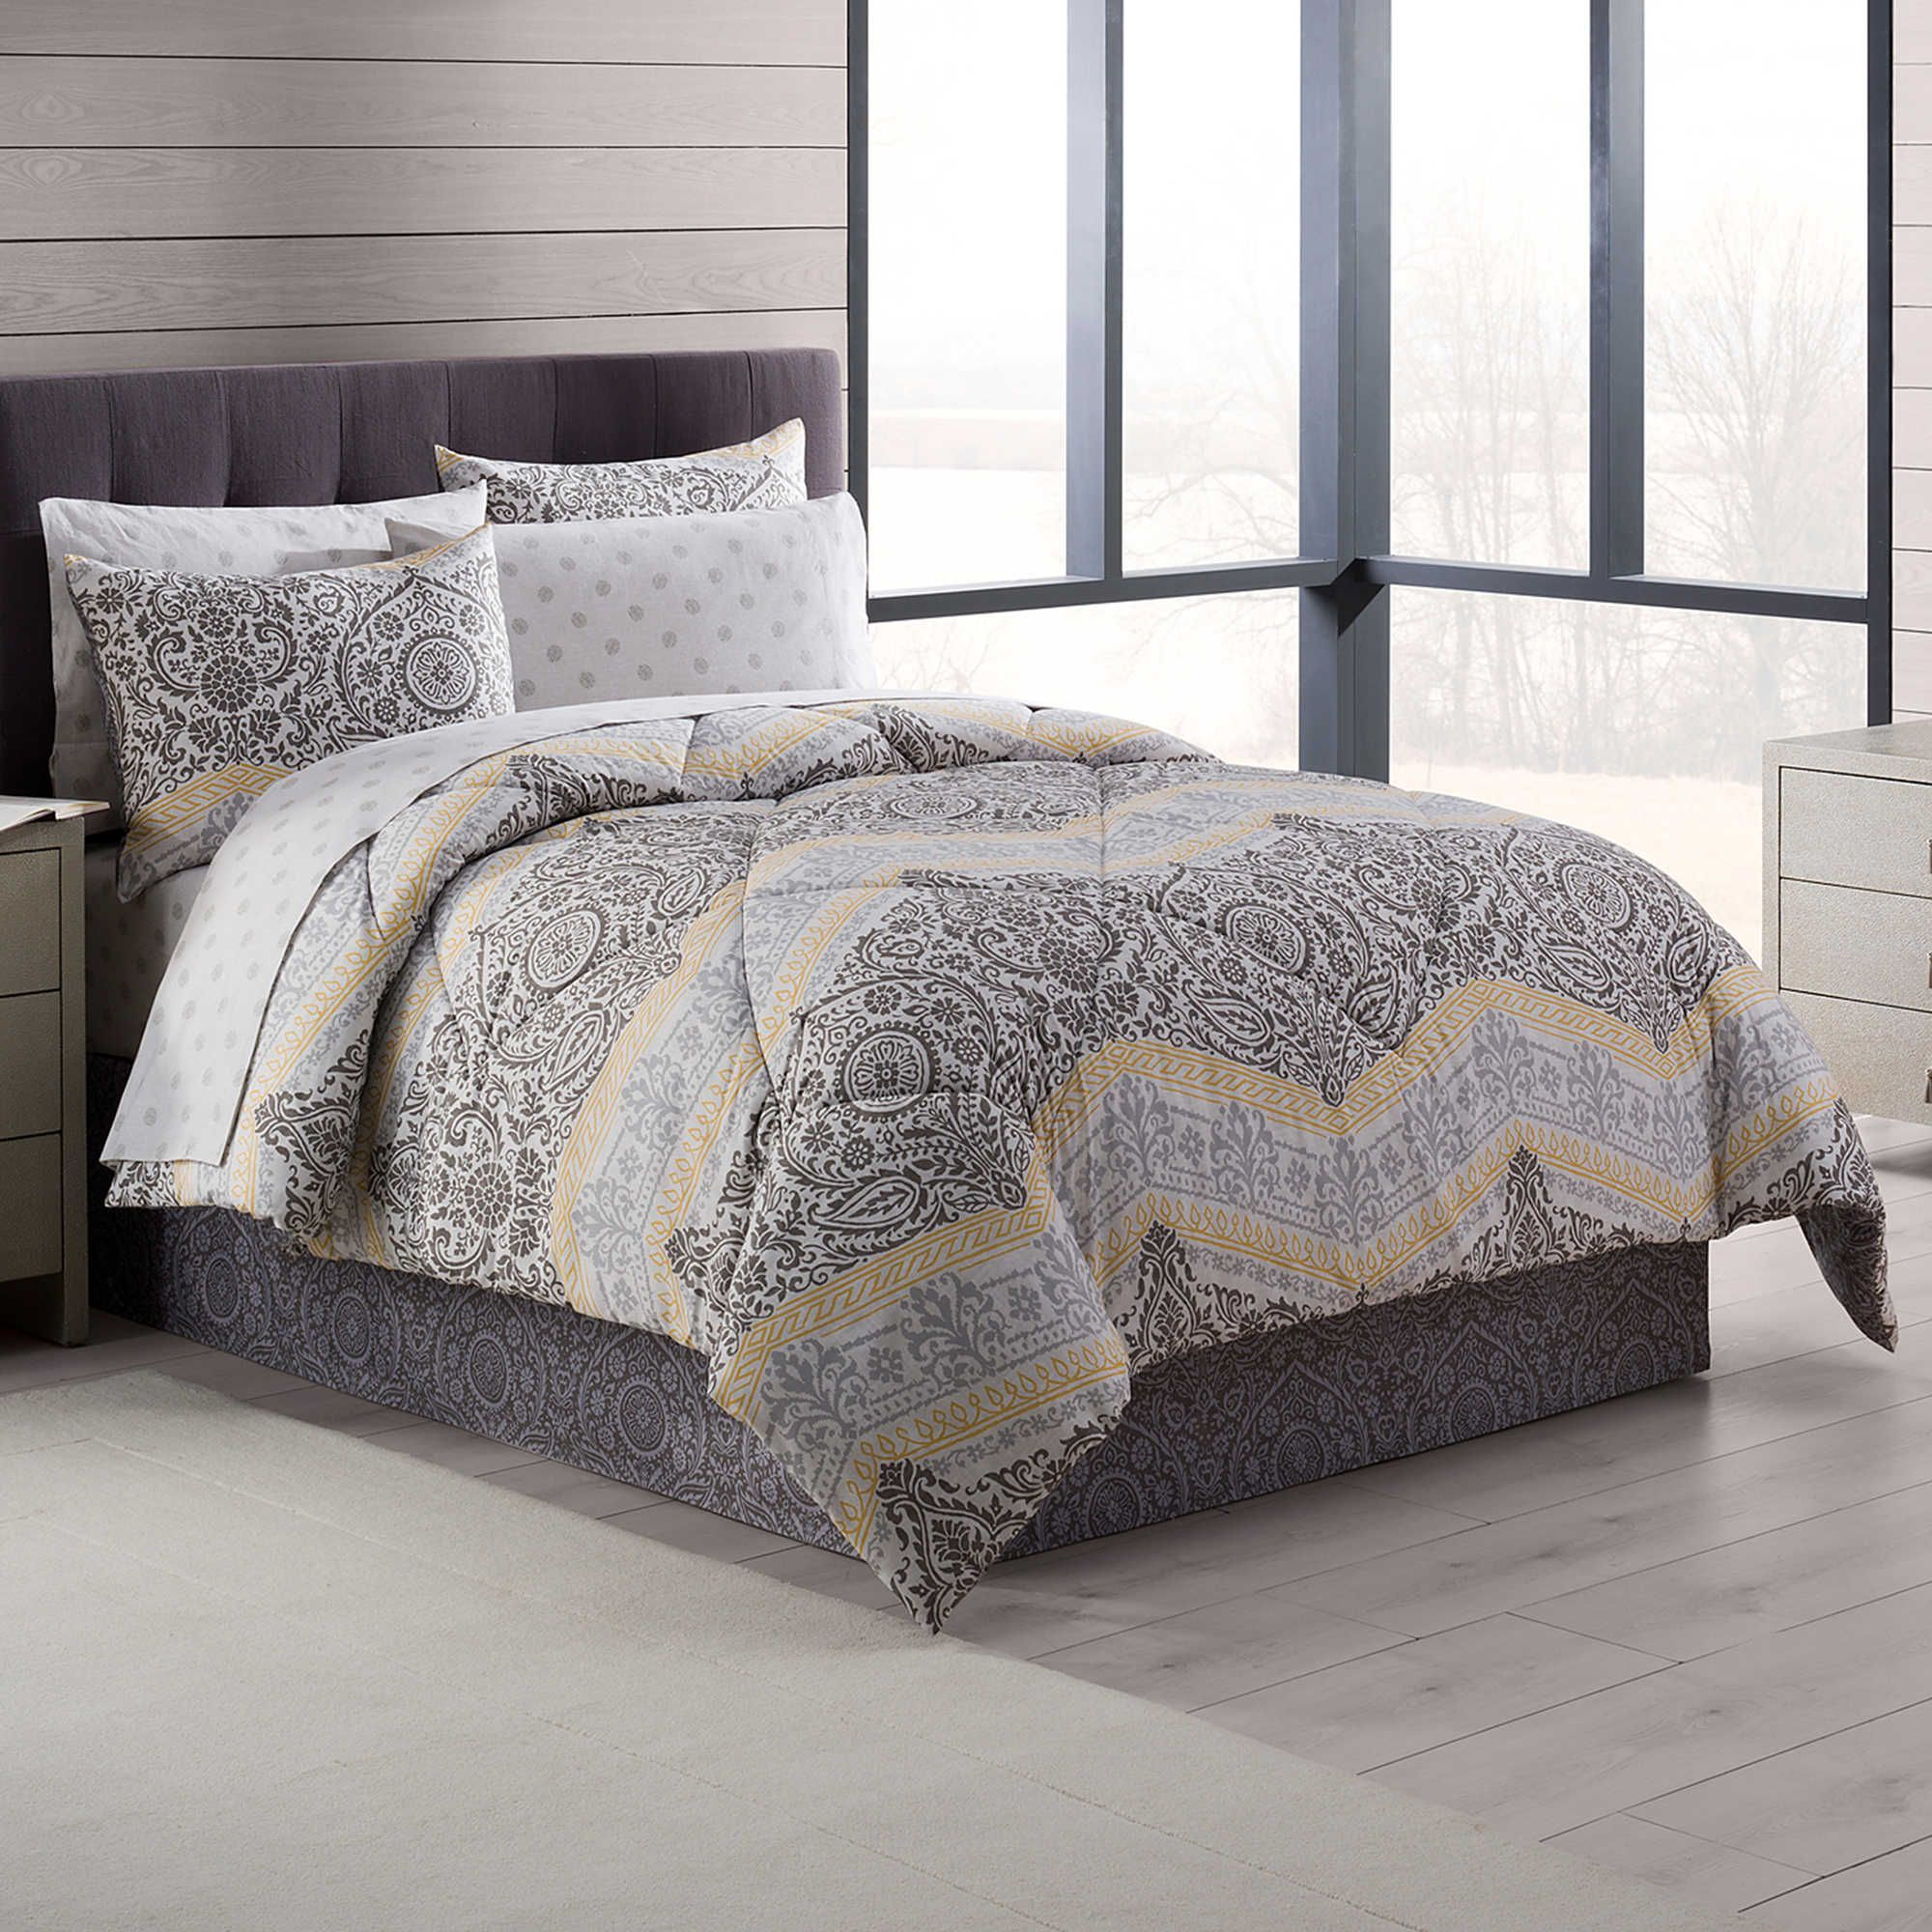 bedroom white bedding decor marvelous dark for design comforter bath gray your light bed scandinavian grey sets